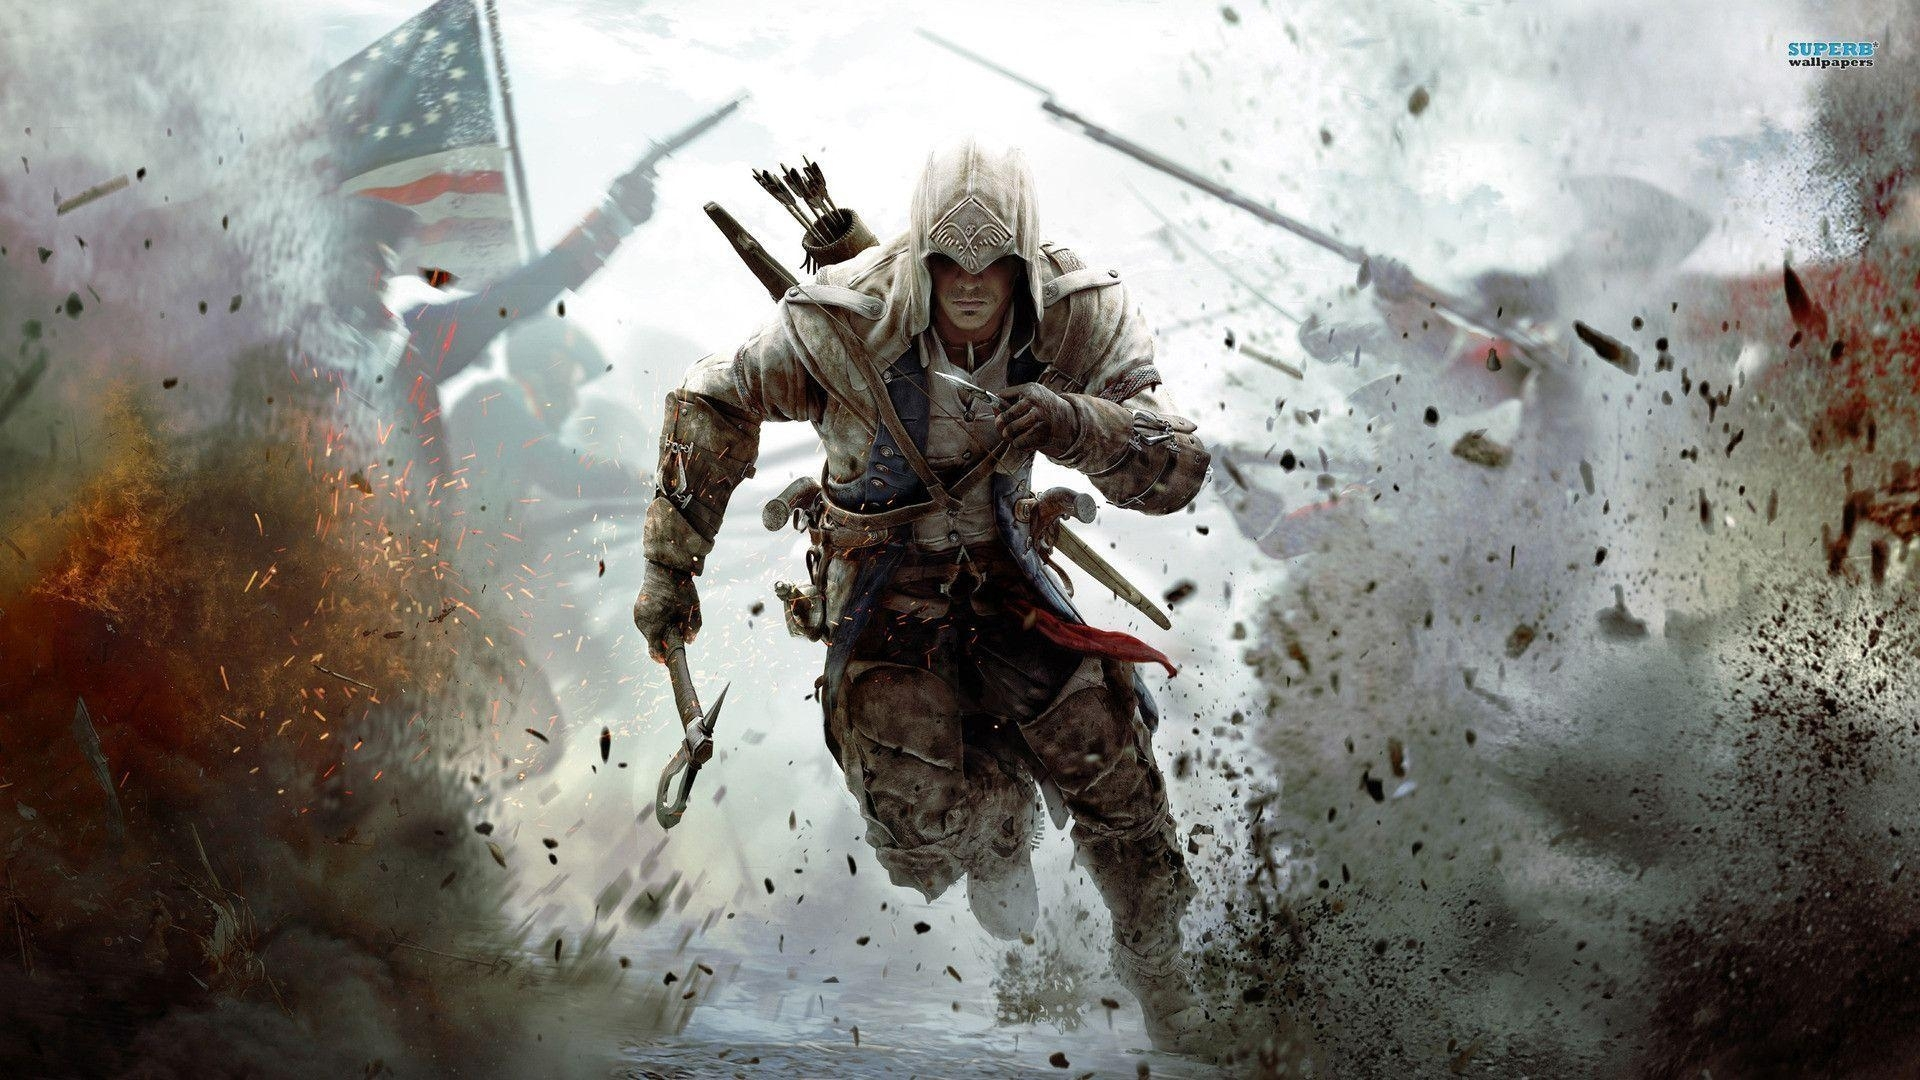 assassin's creed 3 wallpapers hd - wallpaper cave